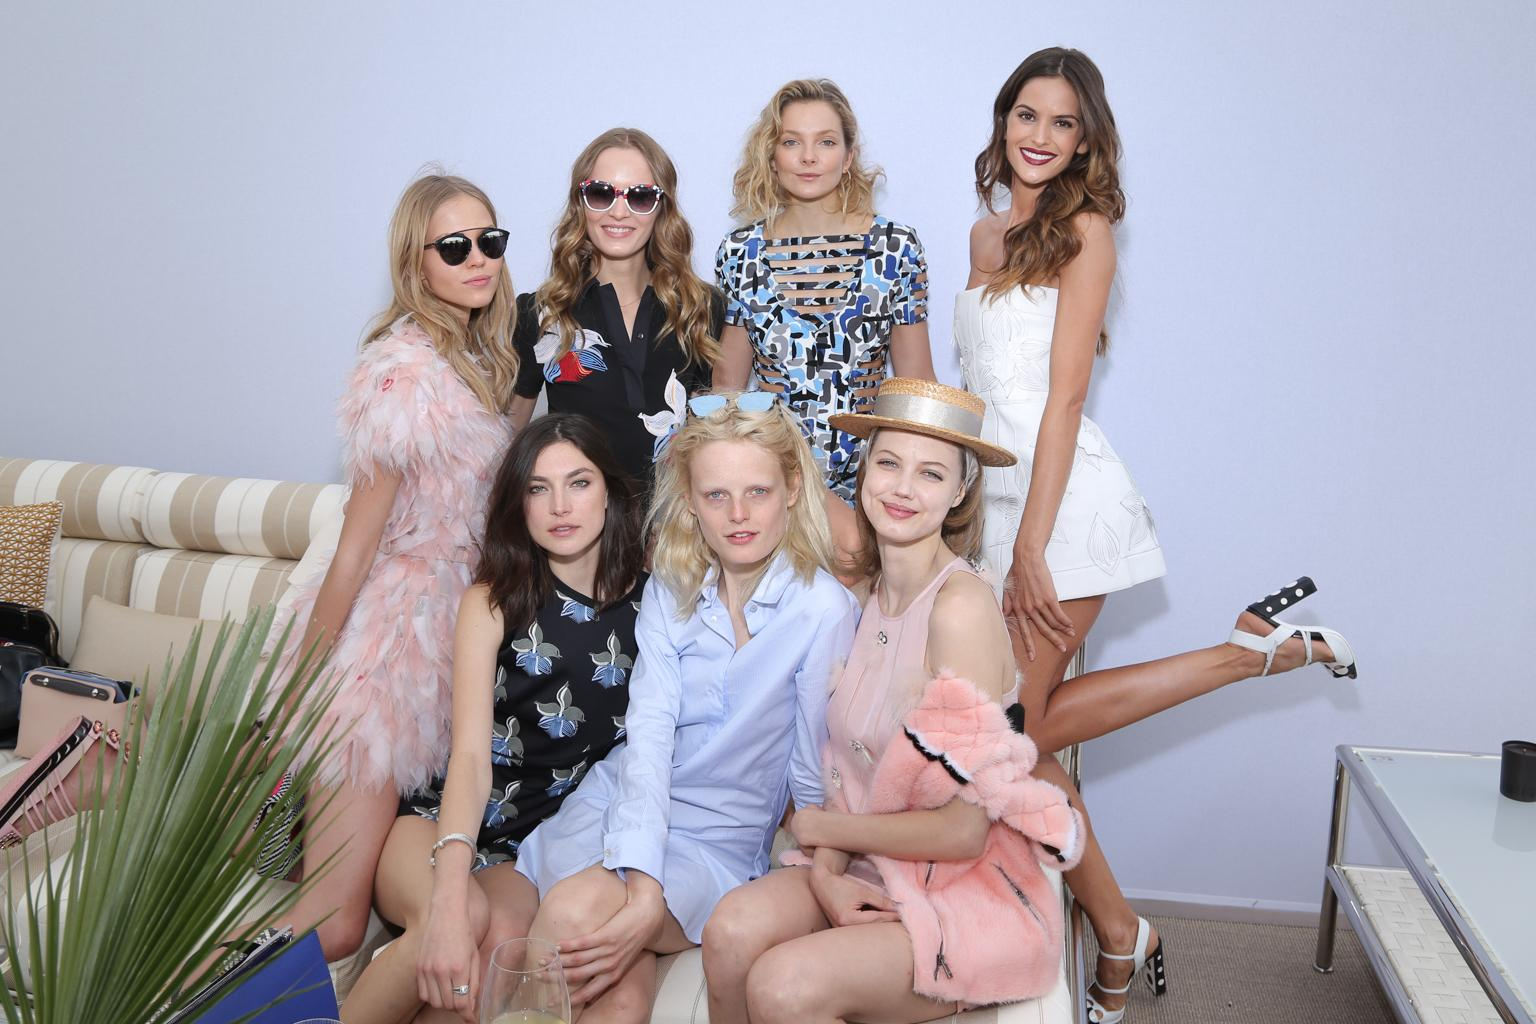 RT @Fendi: Highlights from the celebration of the new 'Fendi by Karl Lagerfeld' book in #Cannes http://t.co/e2cX5DZhig